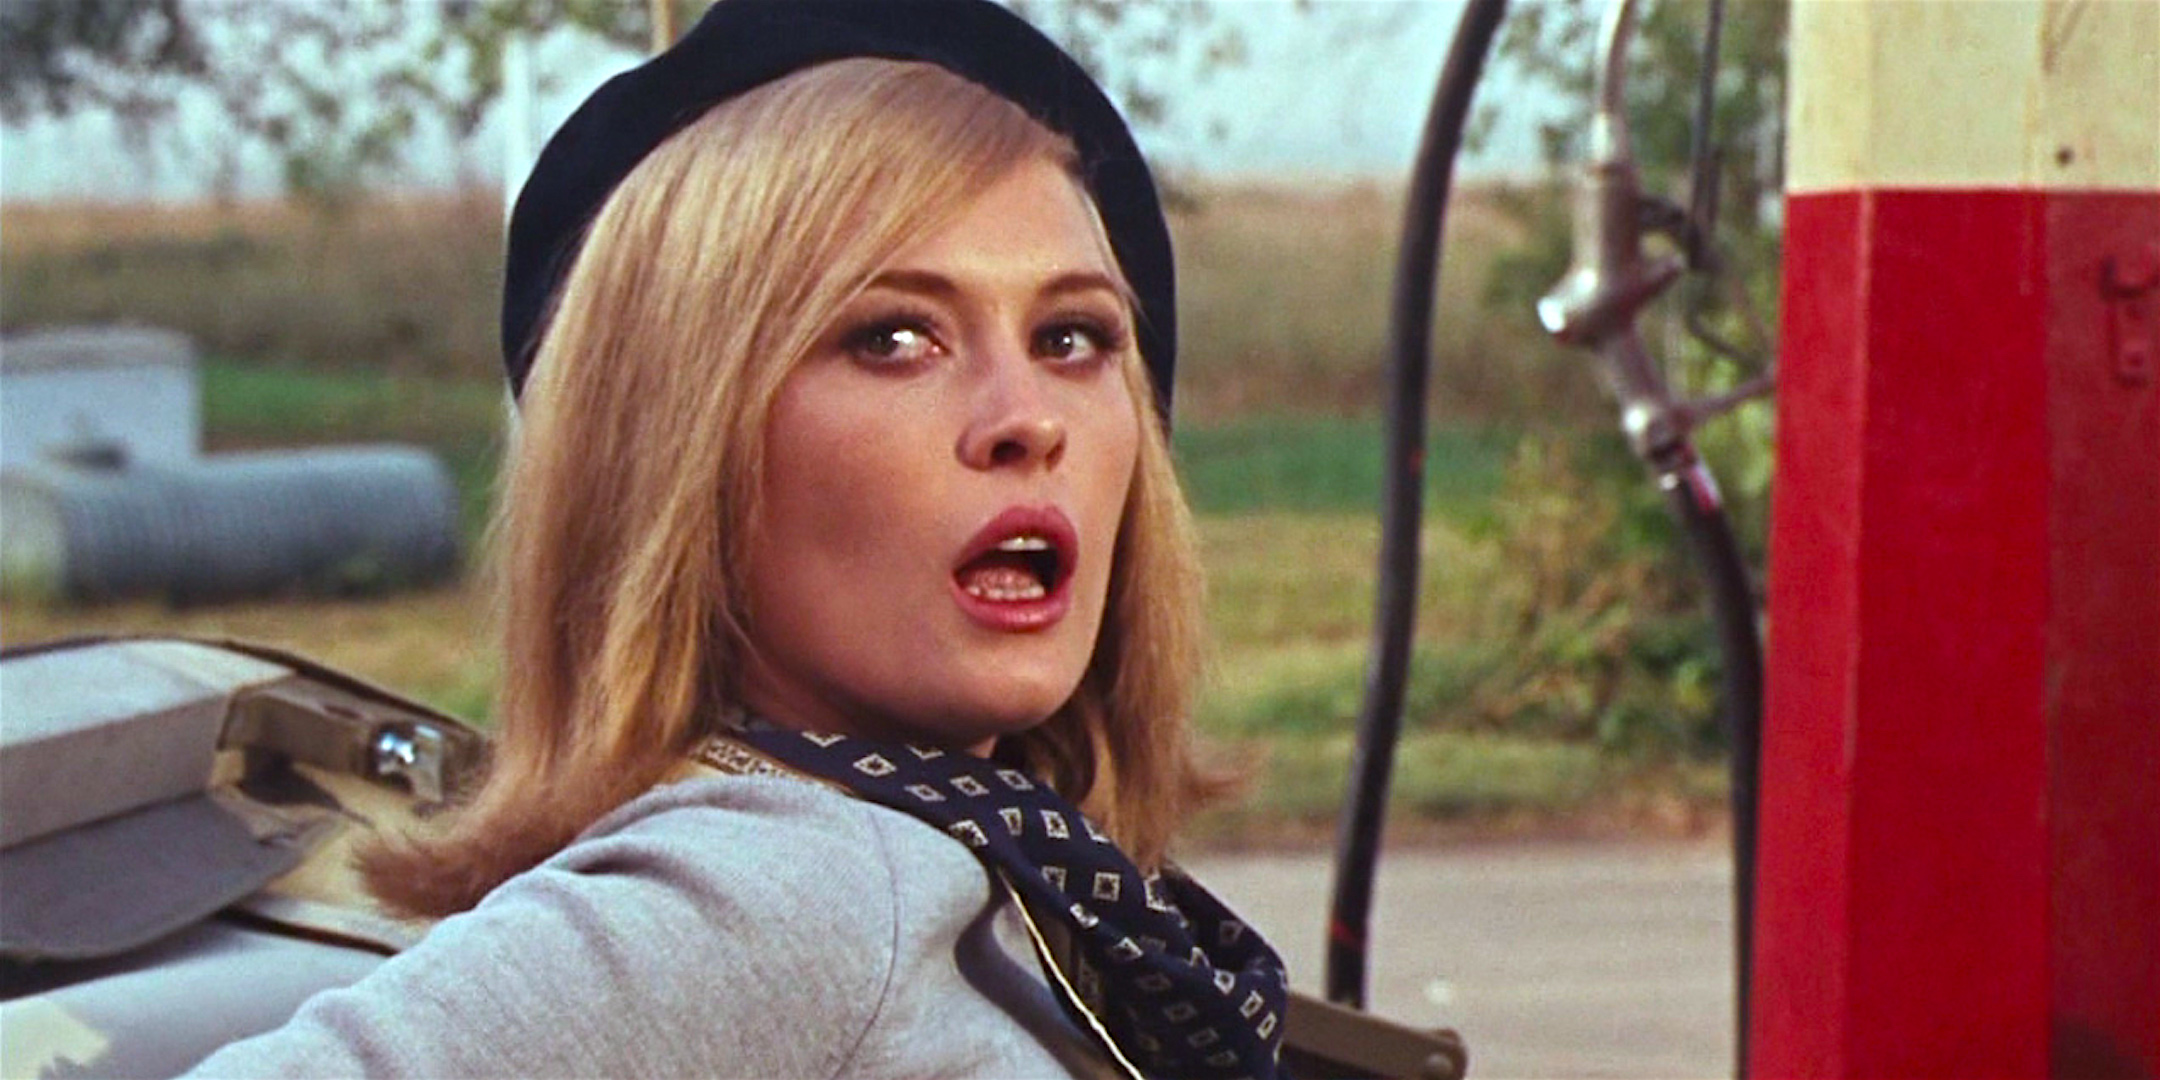 Bonnie & Clyde, Bonnie and Clyde, gangster, 1920s, 1930s, blonde, surprised, a, entertainment, jessica